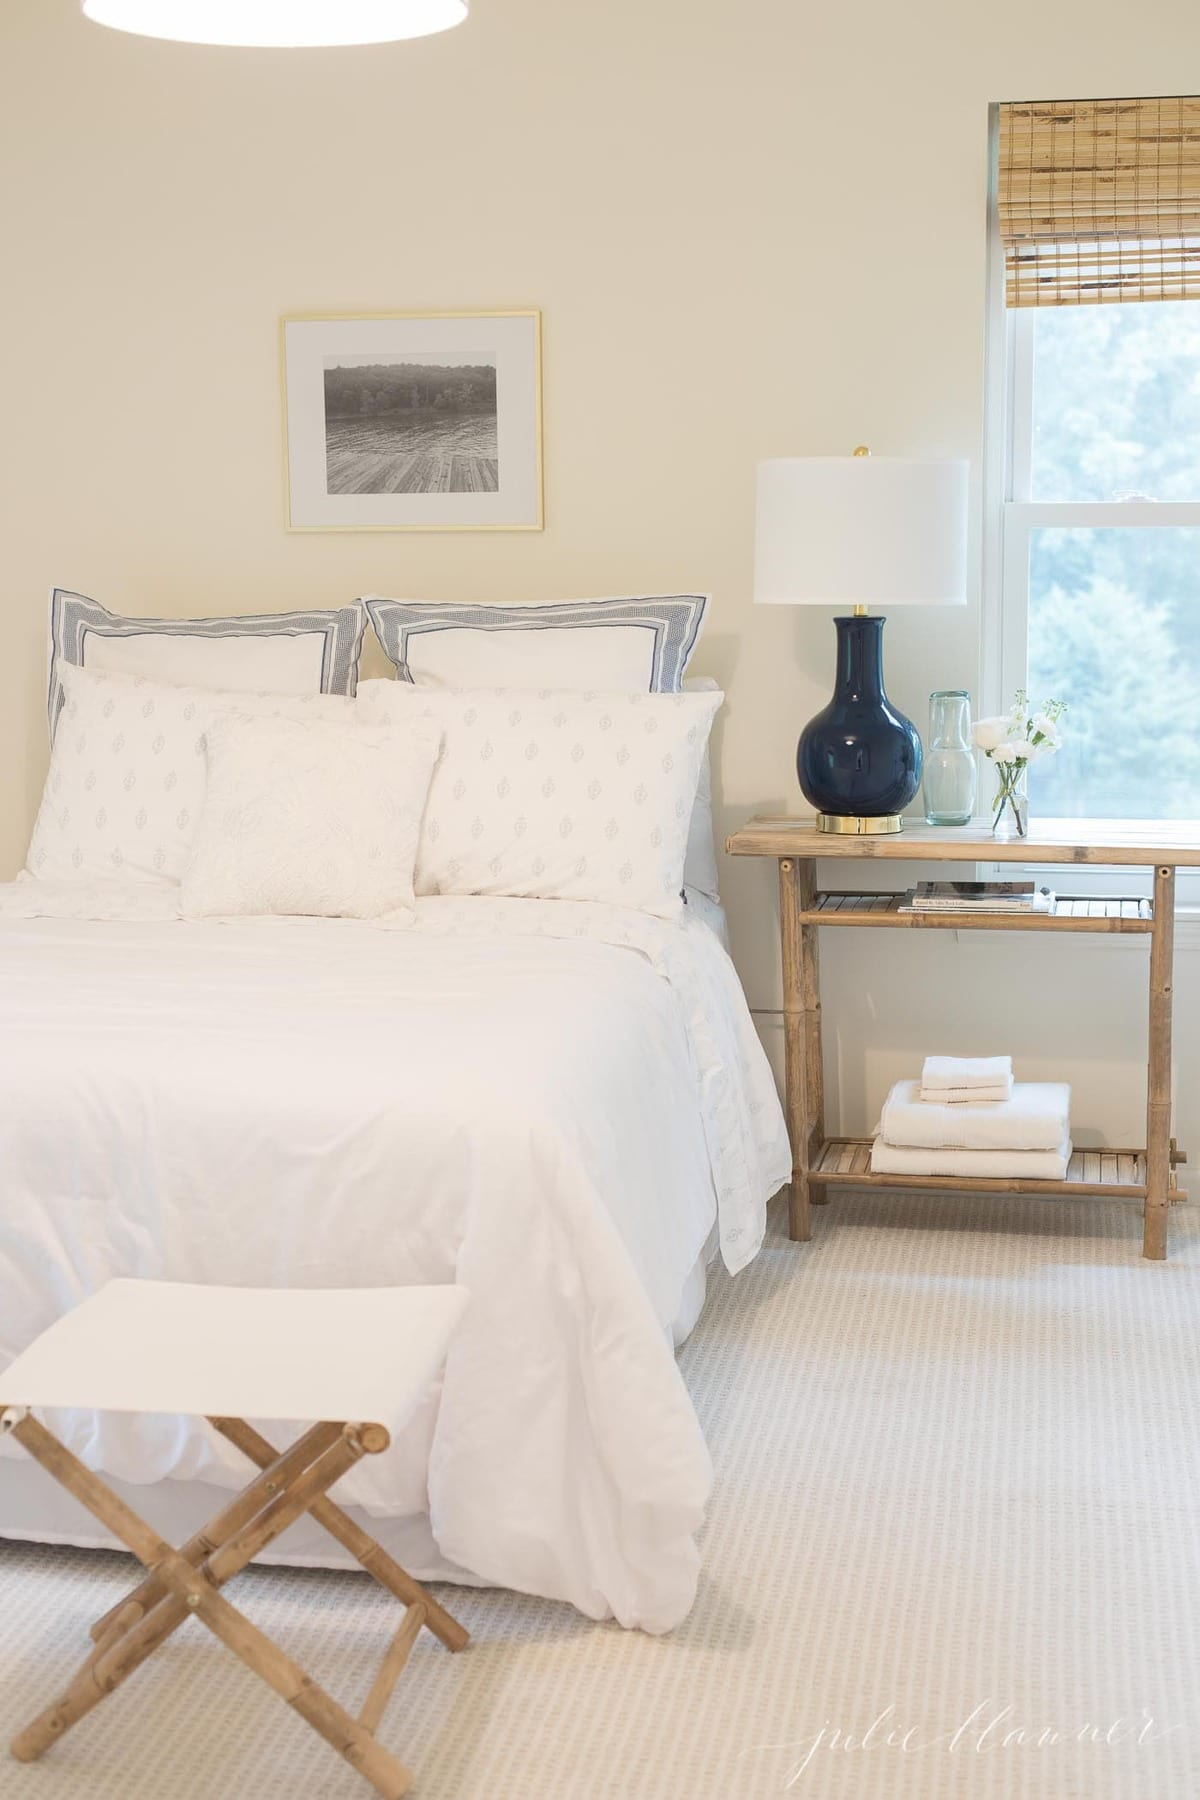 patterned carpet in lake house bedroom decorated with white and blue and bamboo furniture